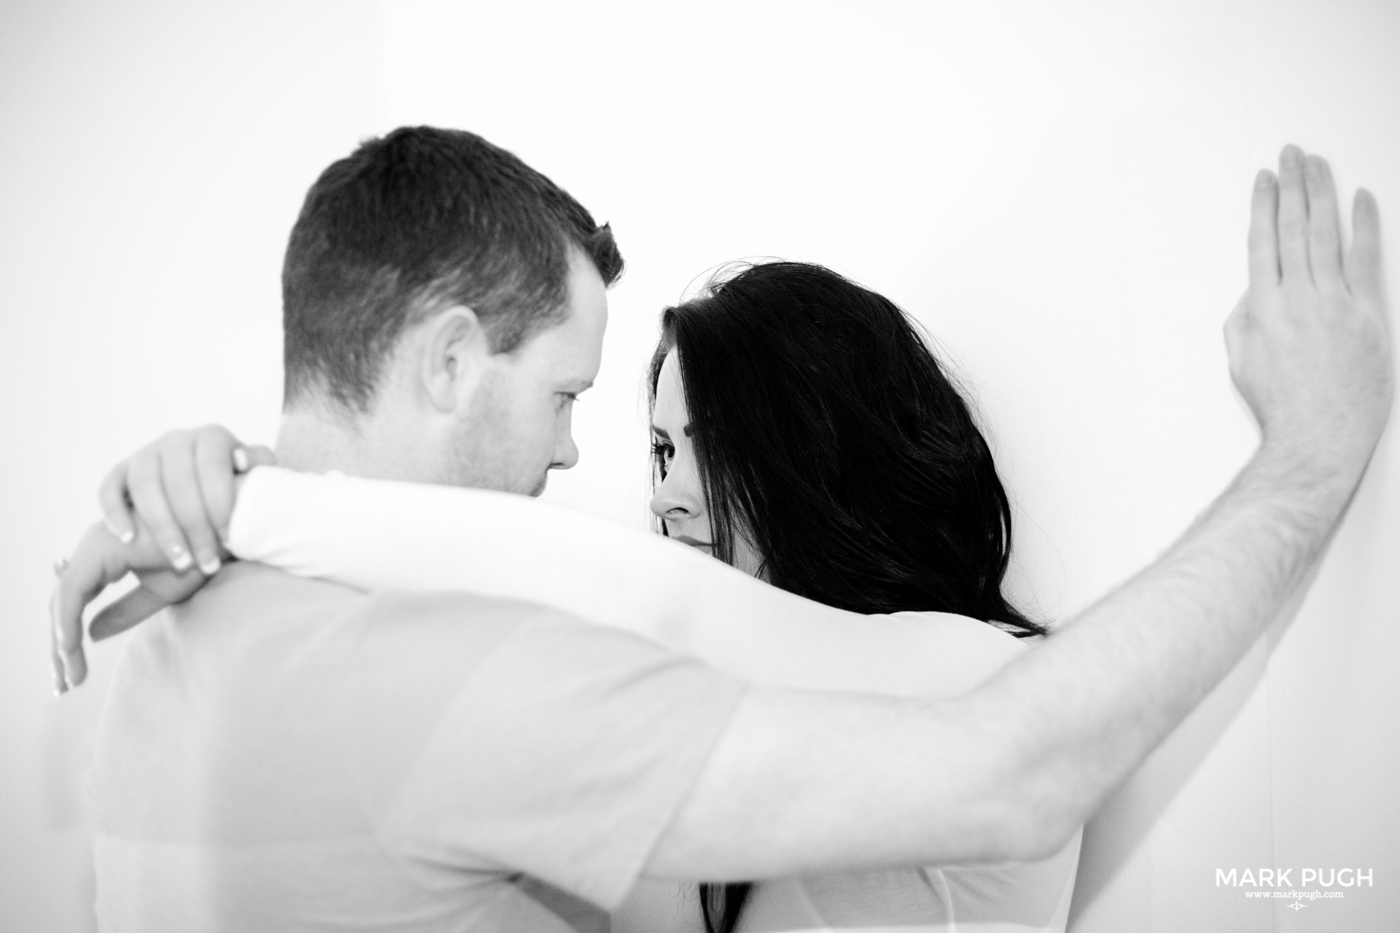 040 - Louise and Paul - preWED love session at the seaside - Photography by www.markpugh.com.JPG